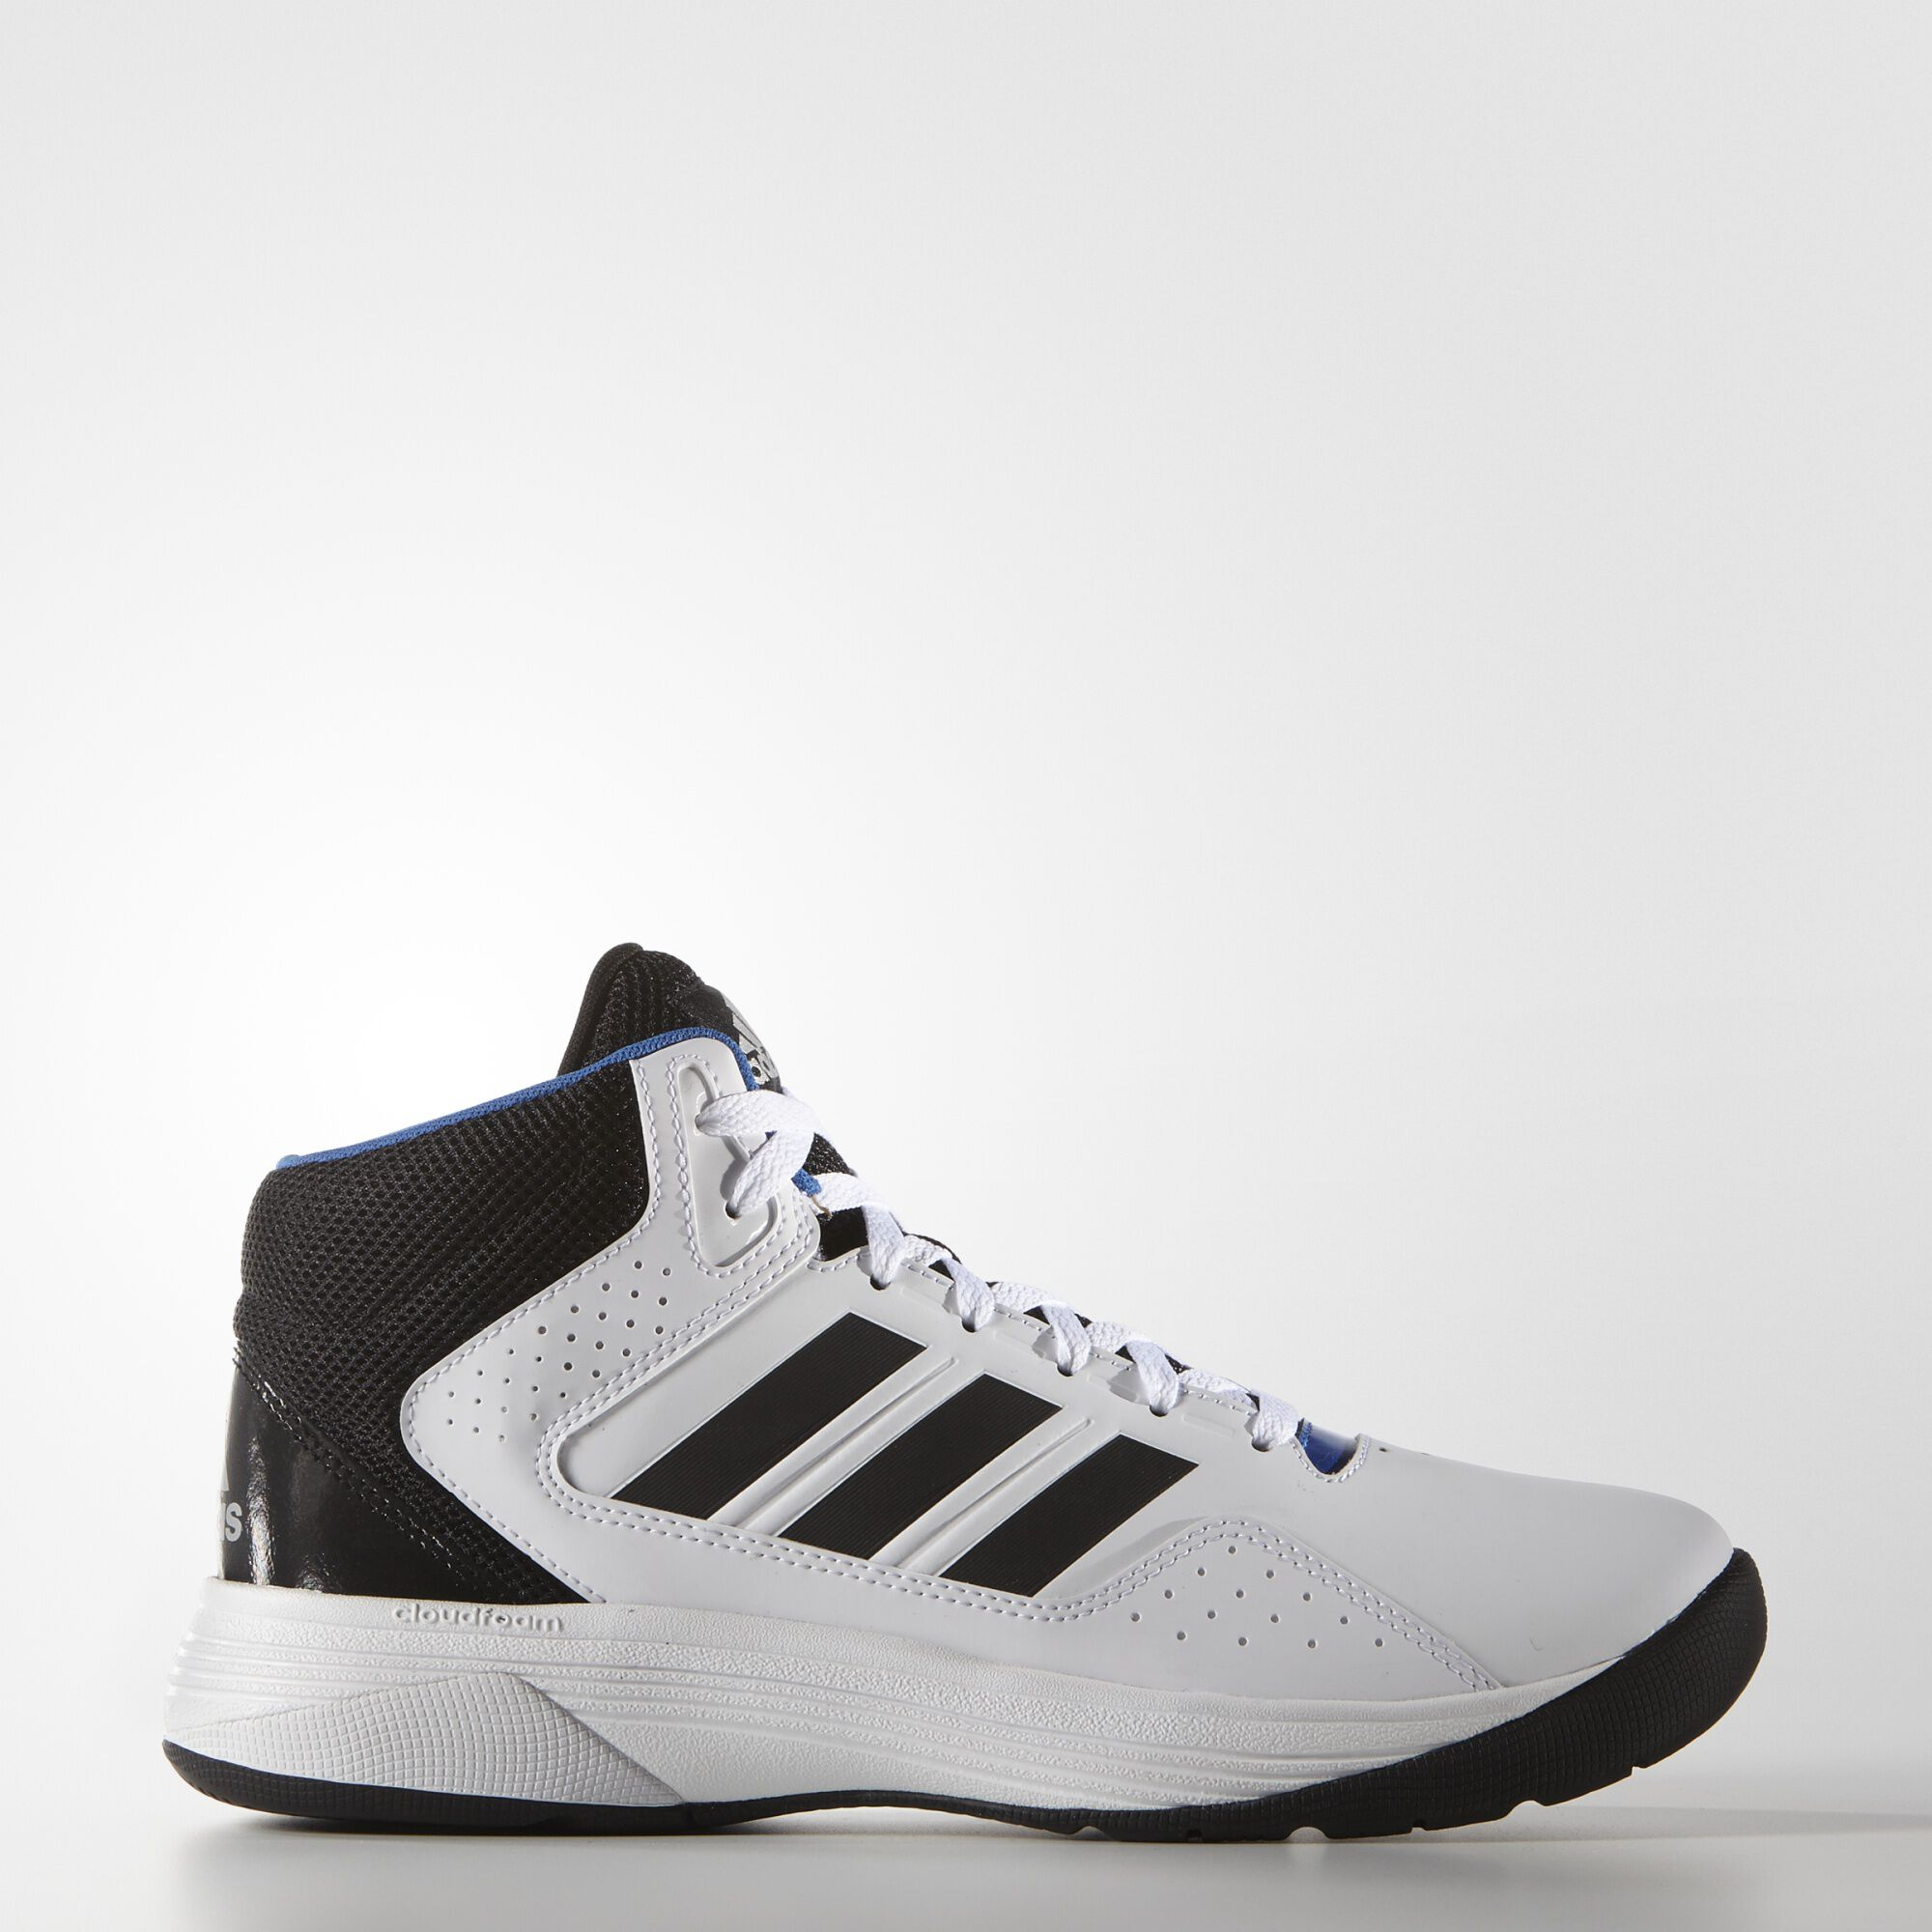 Adidas Neo Advantage Black White